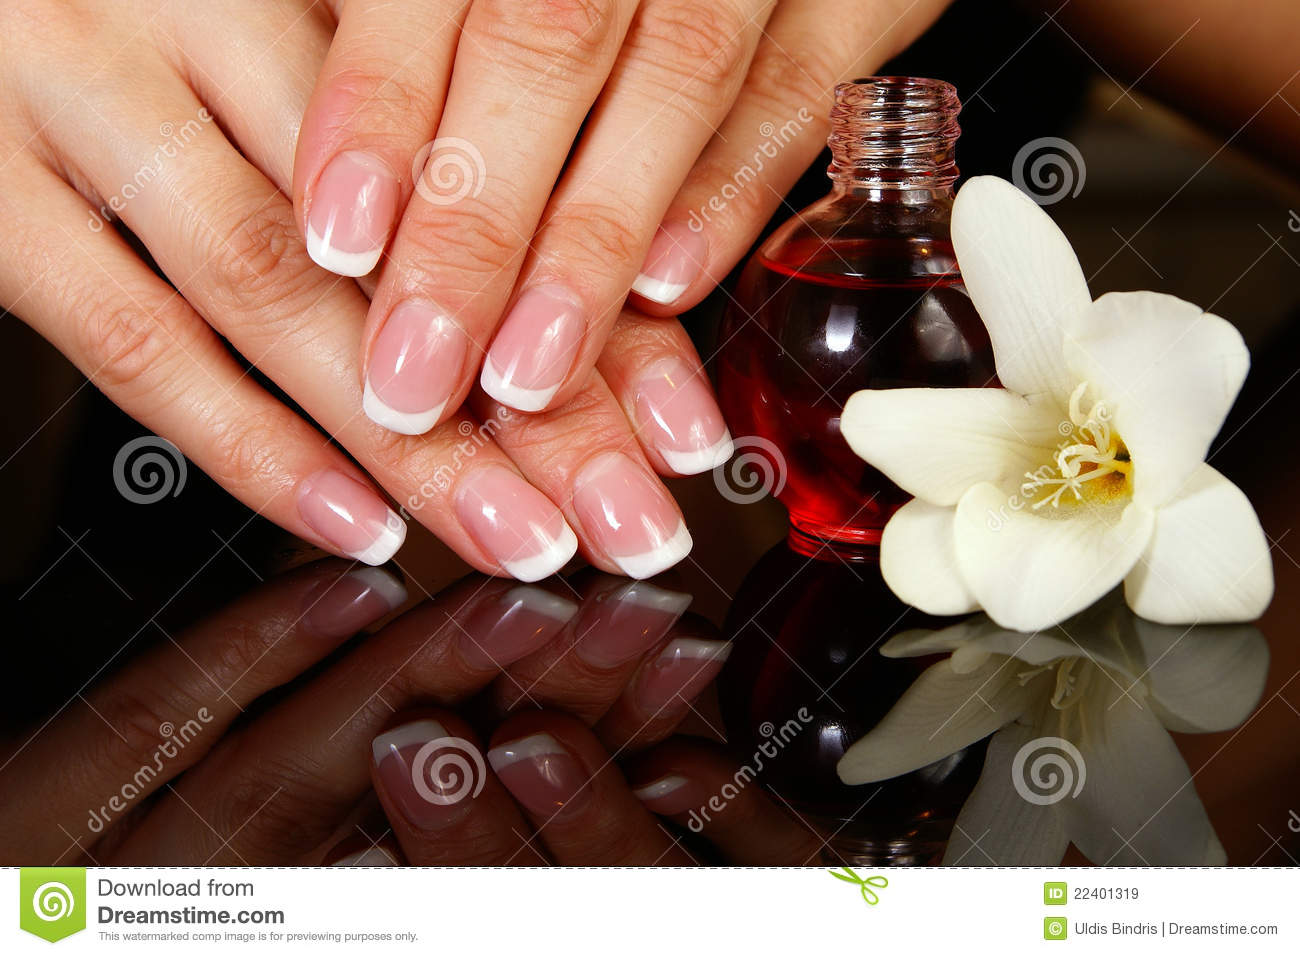 Nail Art Stock Image Image Of Girl Craft Buff Fingers 22401319